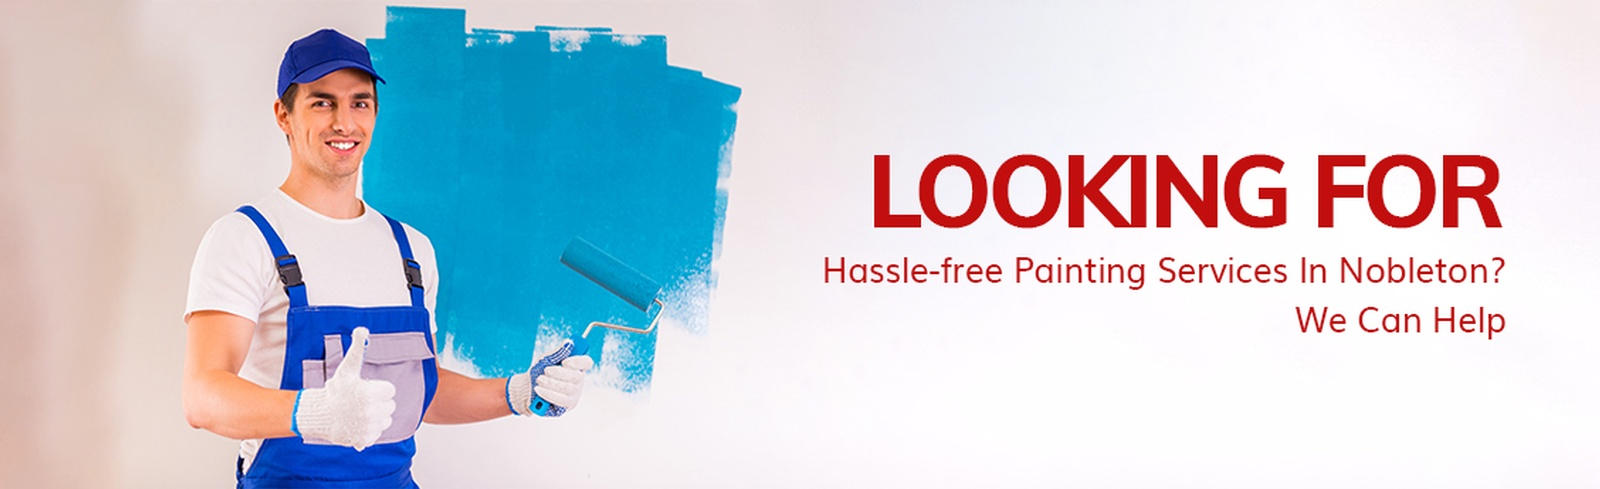 Looking For Hassle-free Painting Services In Nobleton